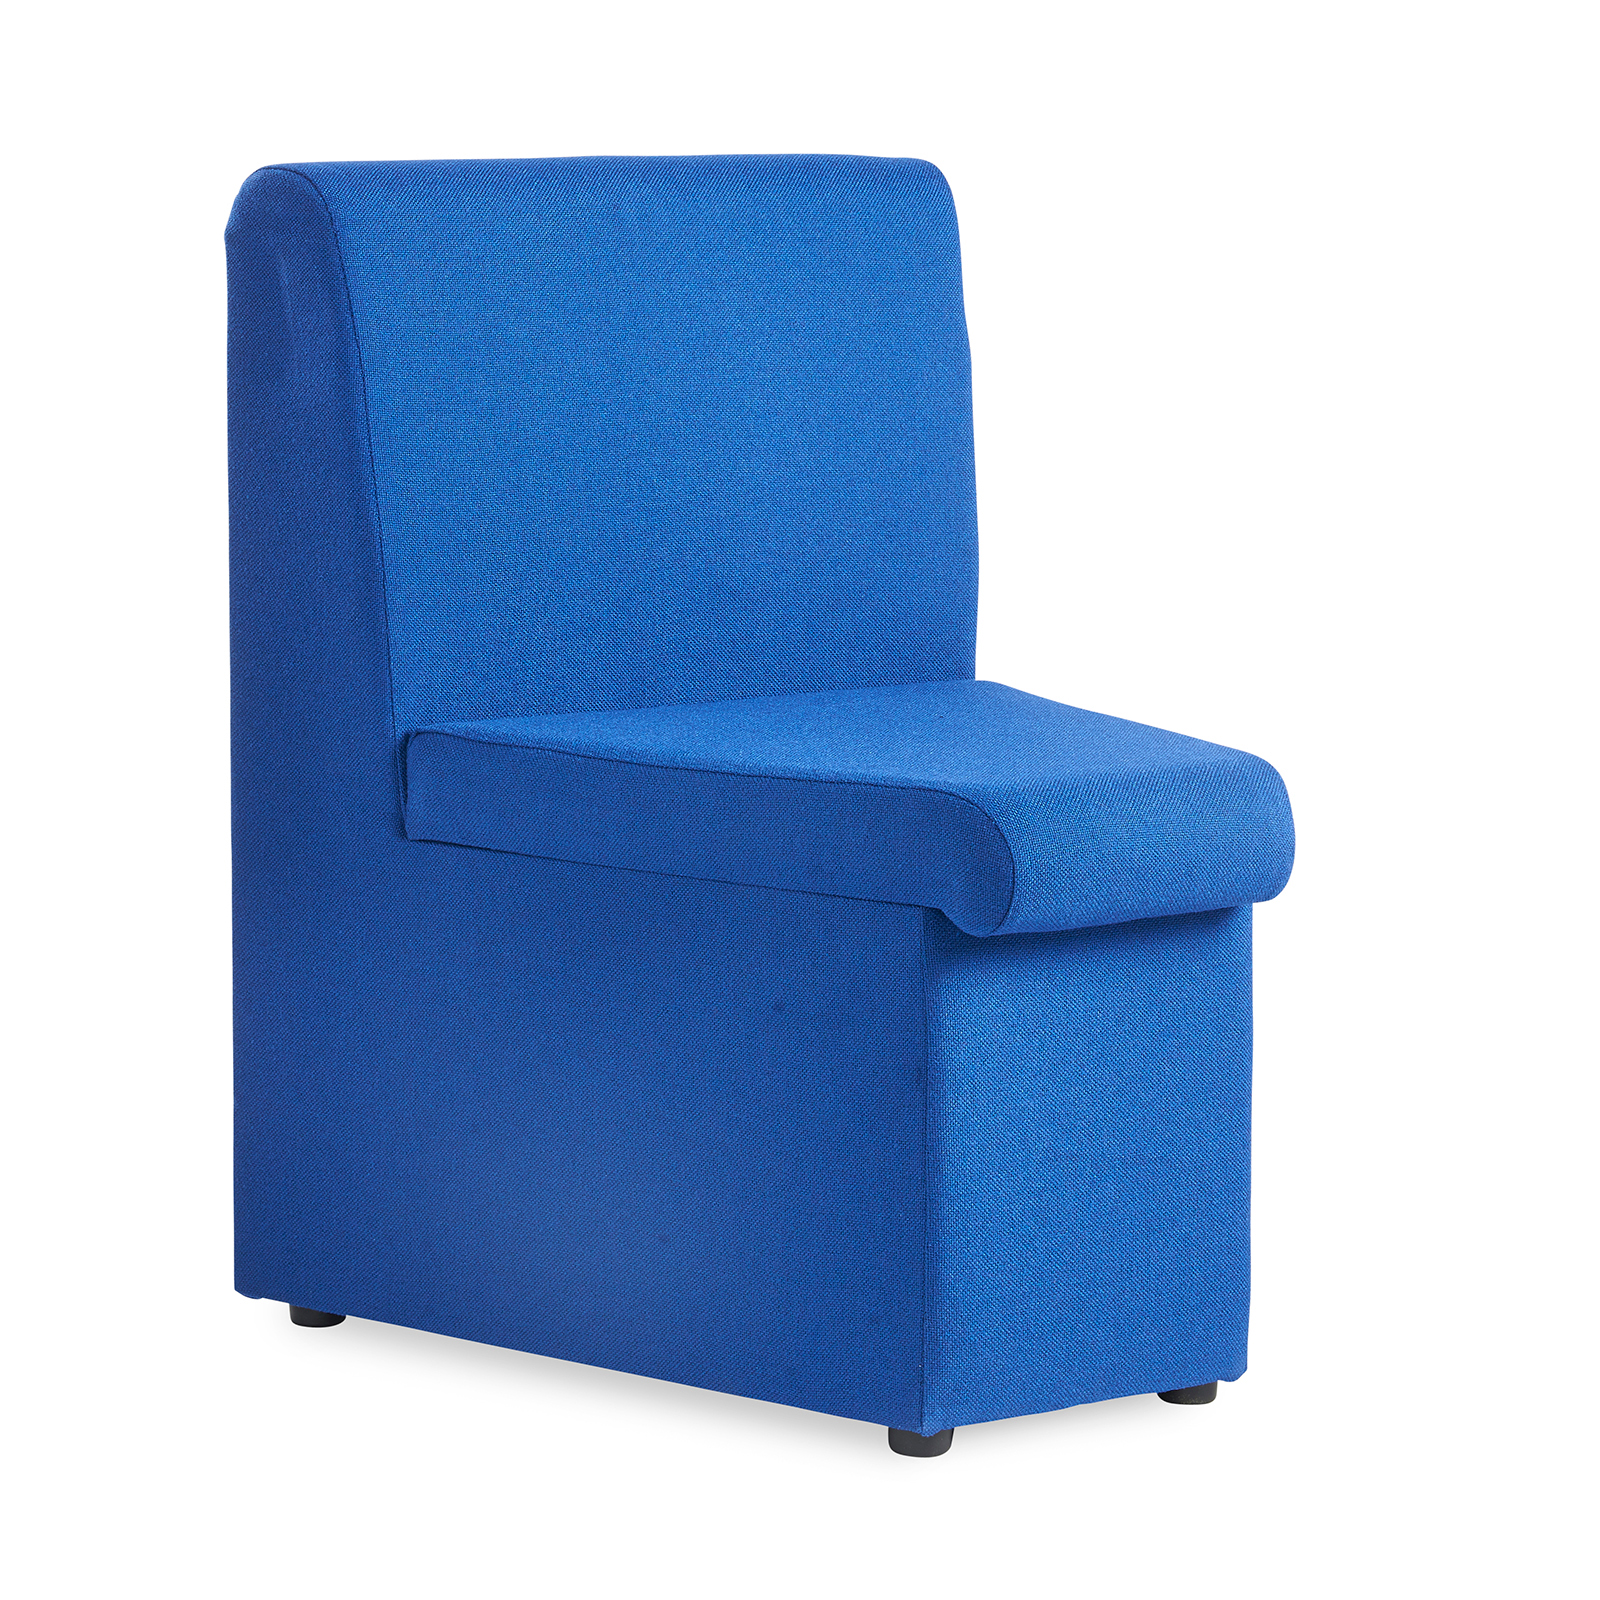 Alto modular reception seating concave with no arms - blue